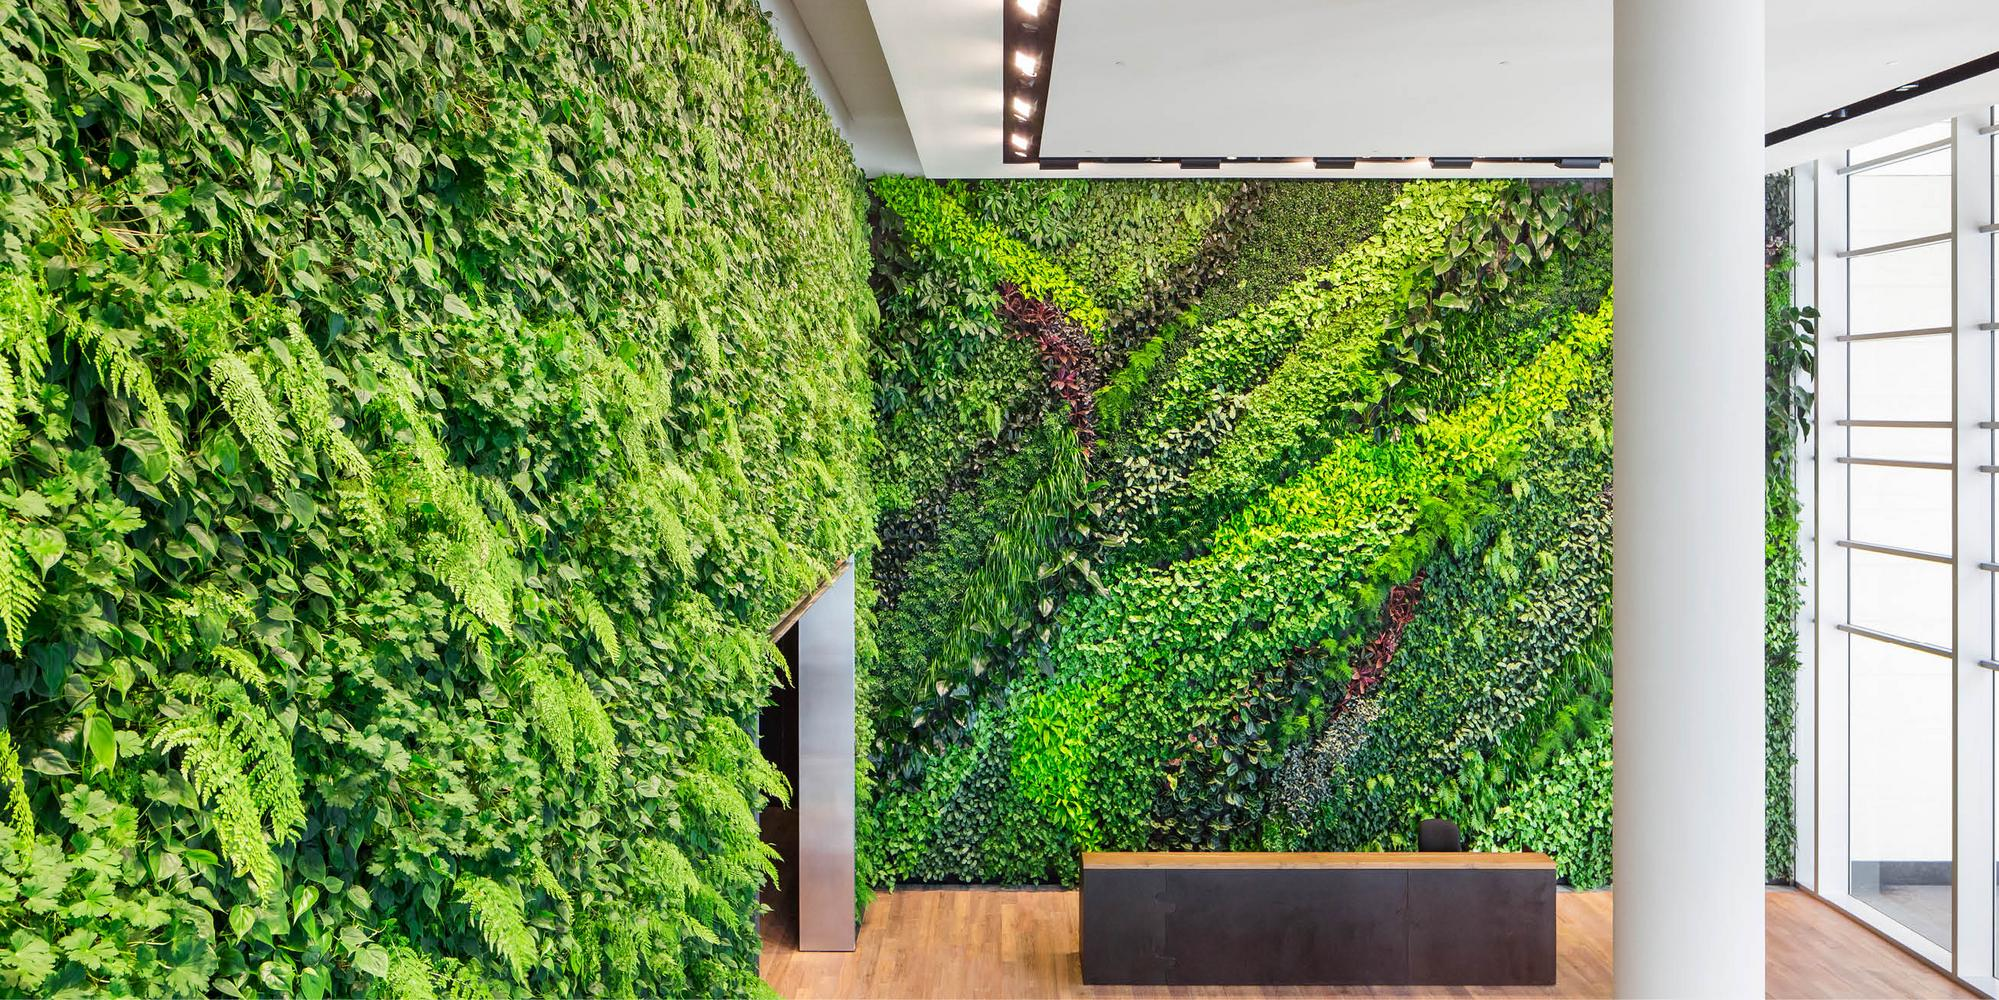 Foundry Square III Living Wall by Habitat Horticulture - View 5